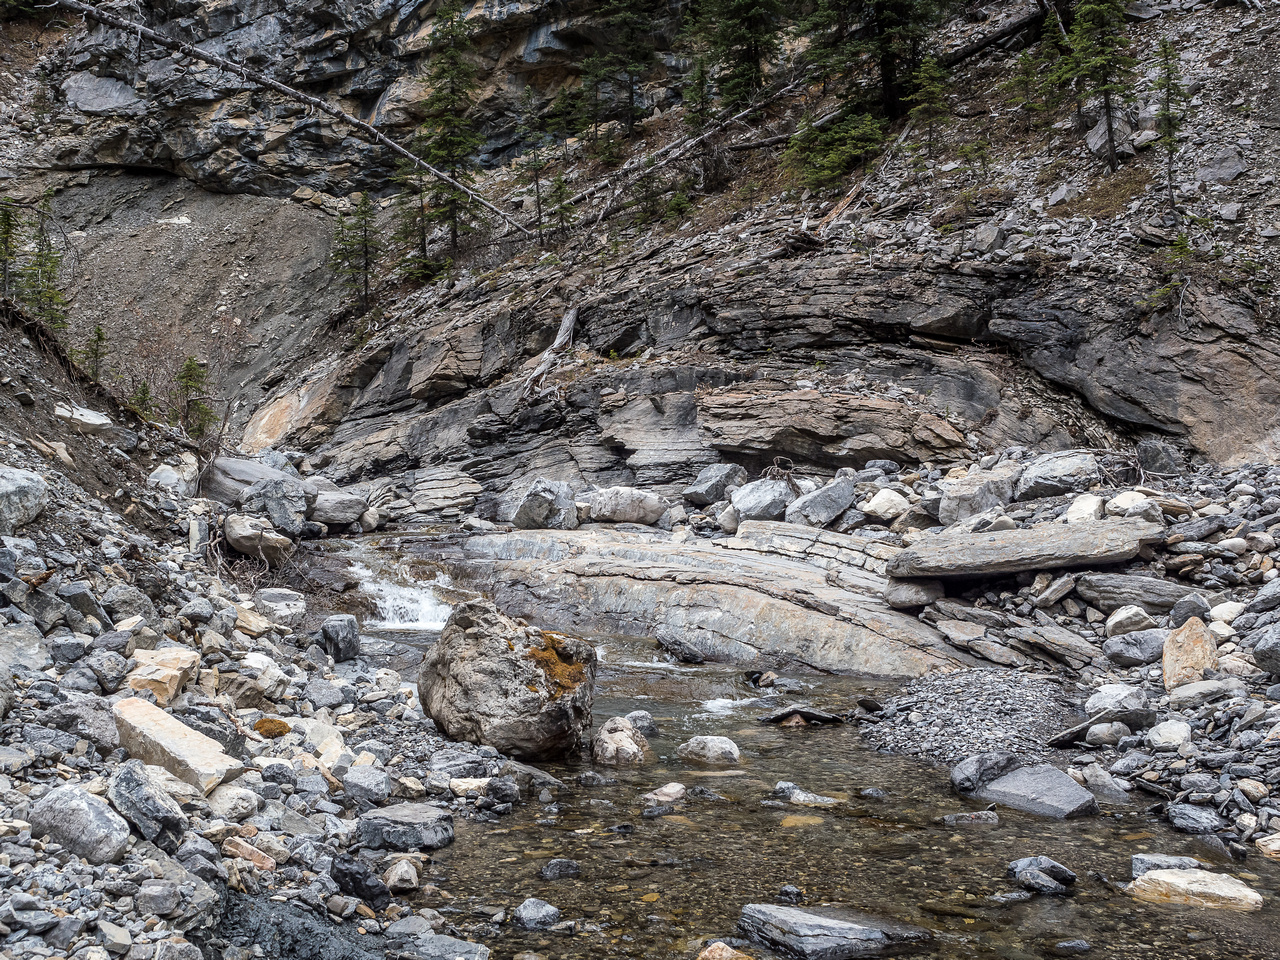 Both geologists got very excited by this obvious anticline along the creek.